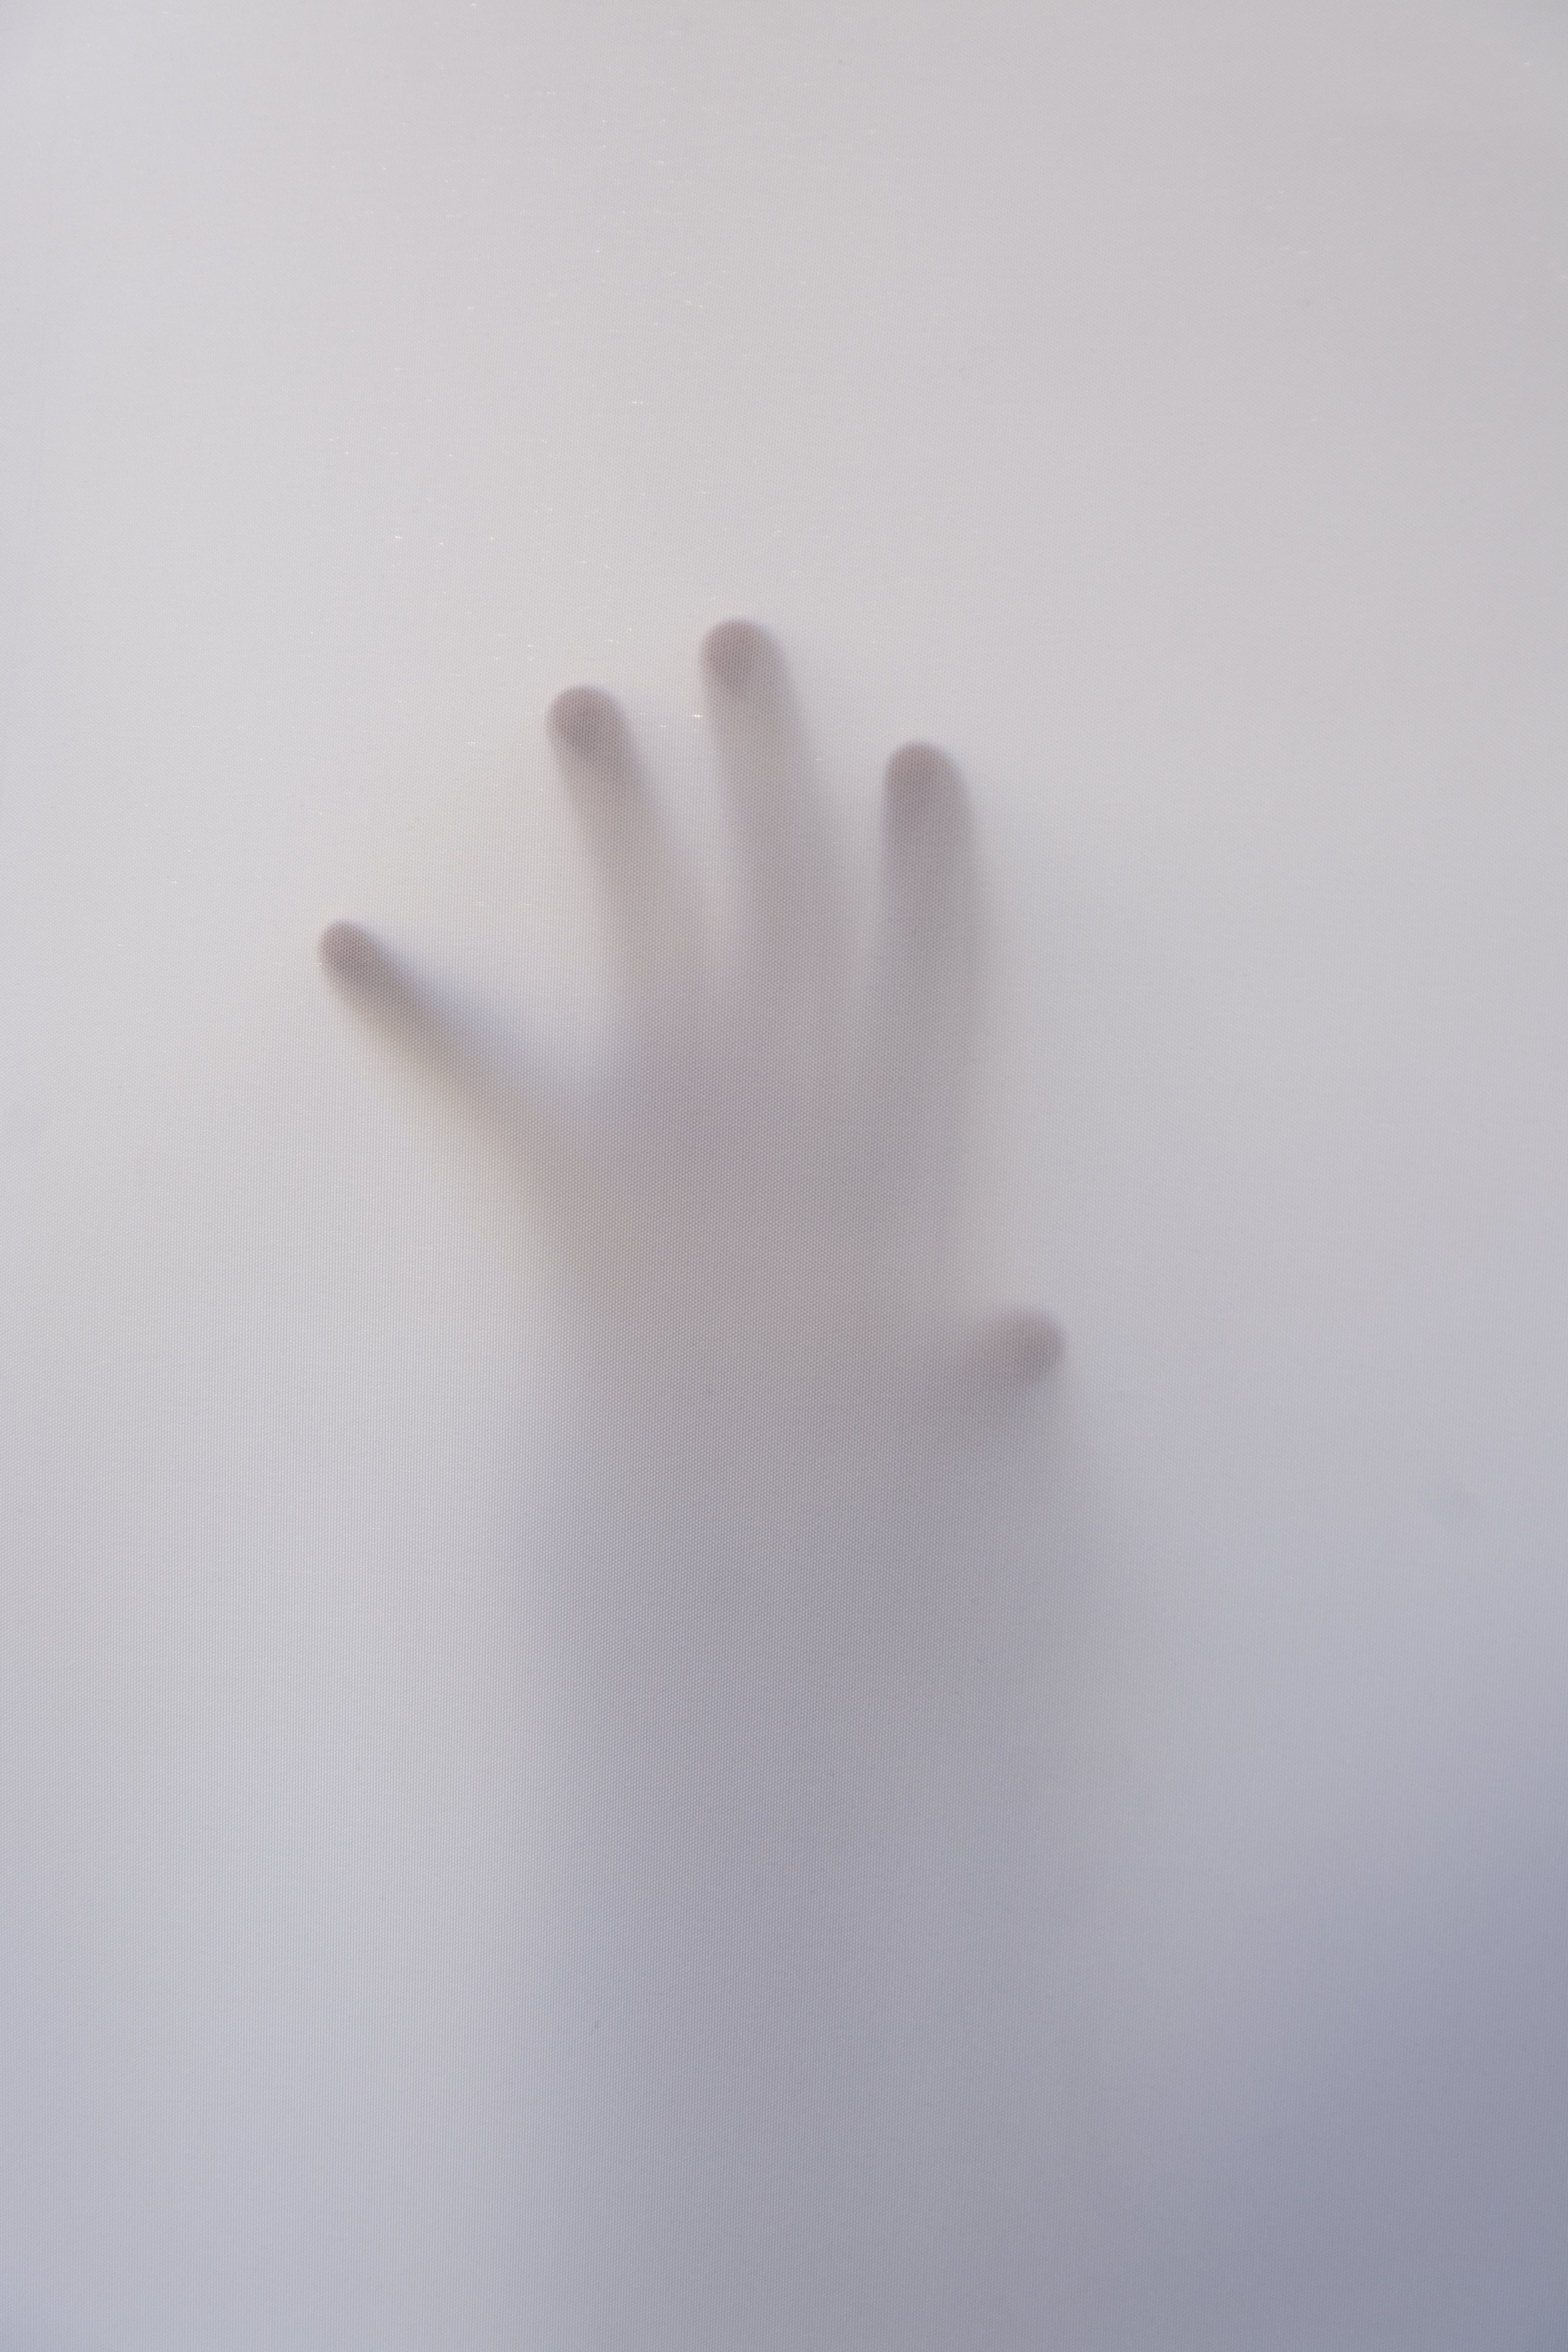 Person's Hand Touching Wall